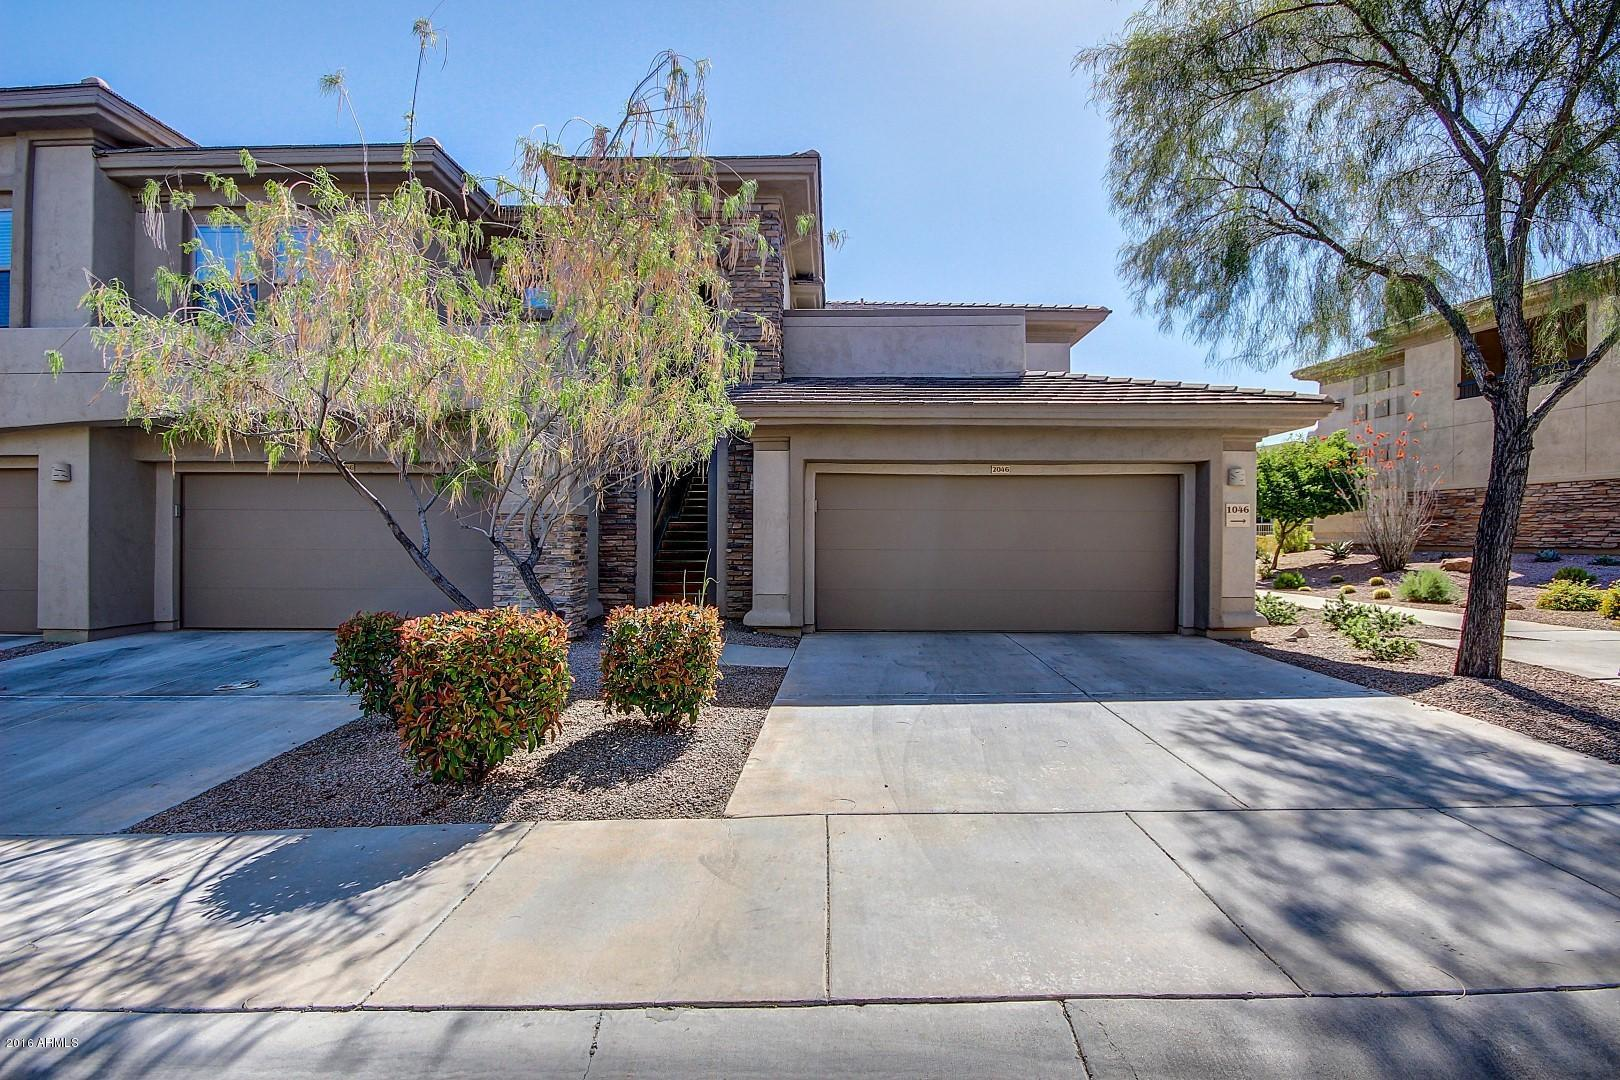 16800 E El Lago Boulevard, Unit 2046, Fountain Hills AZ 85268 - Photo 1